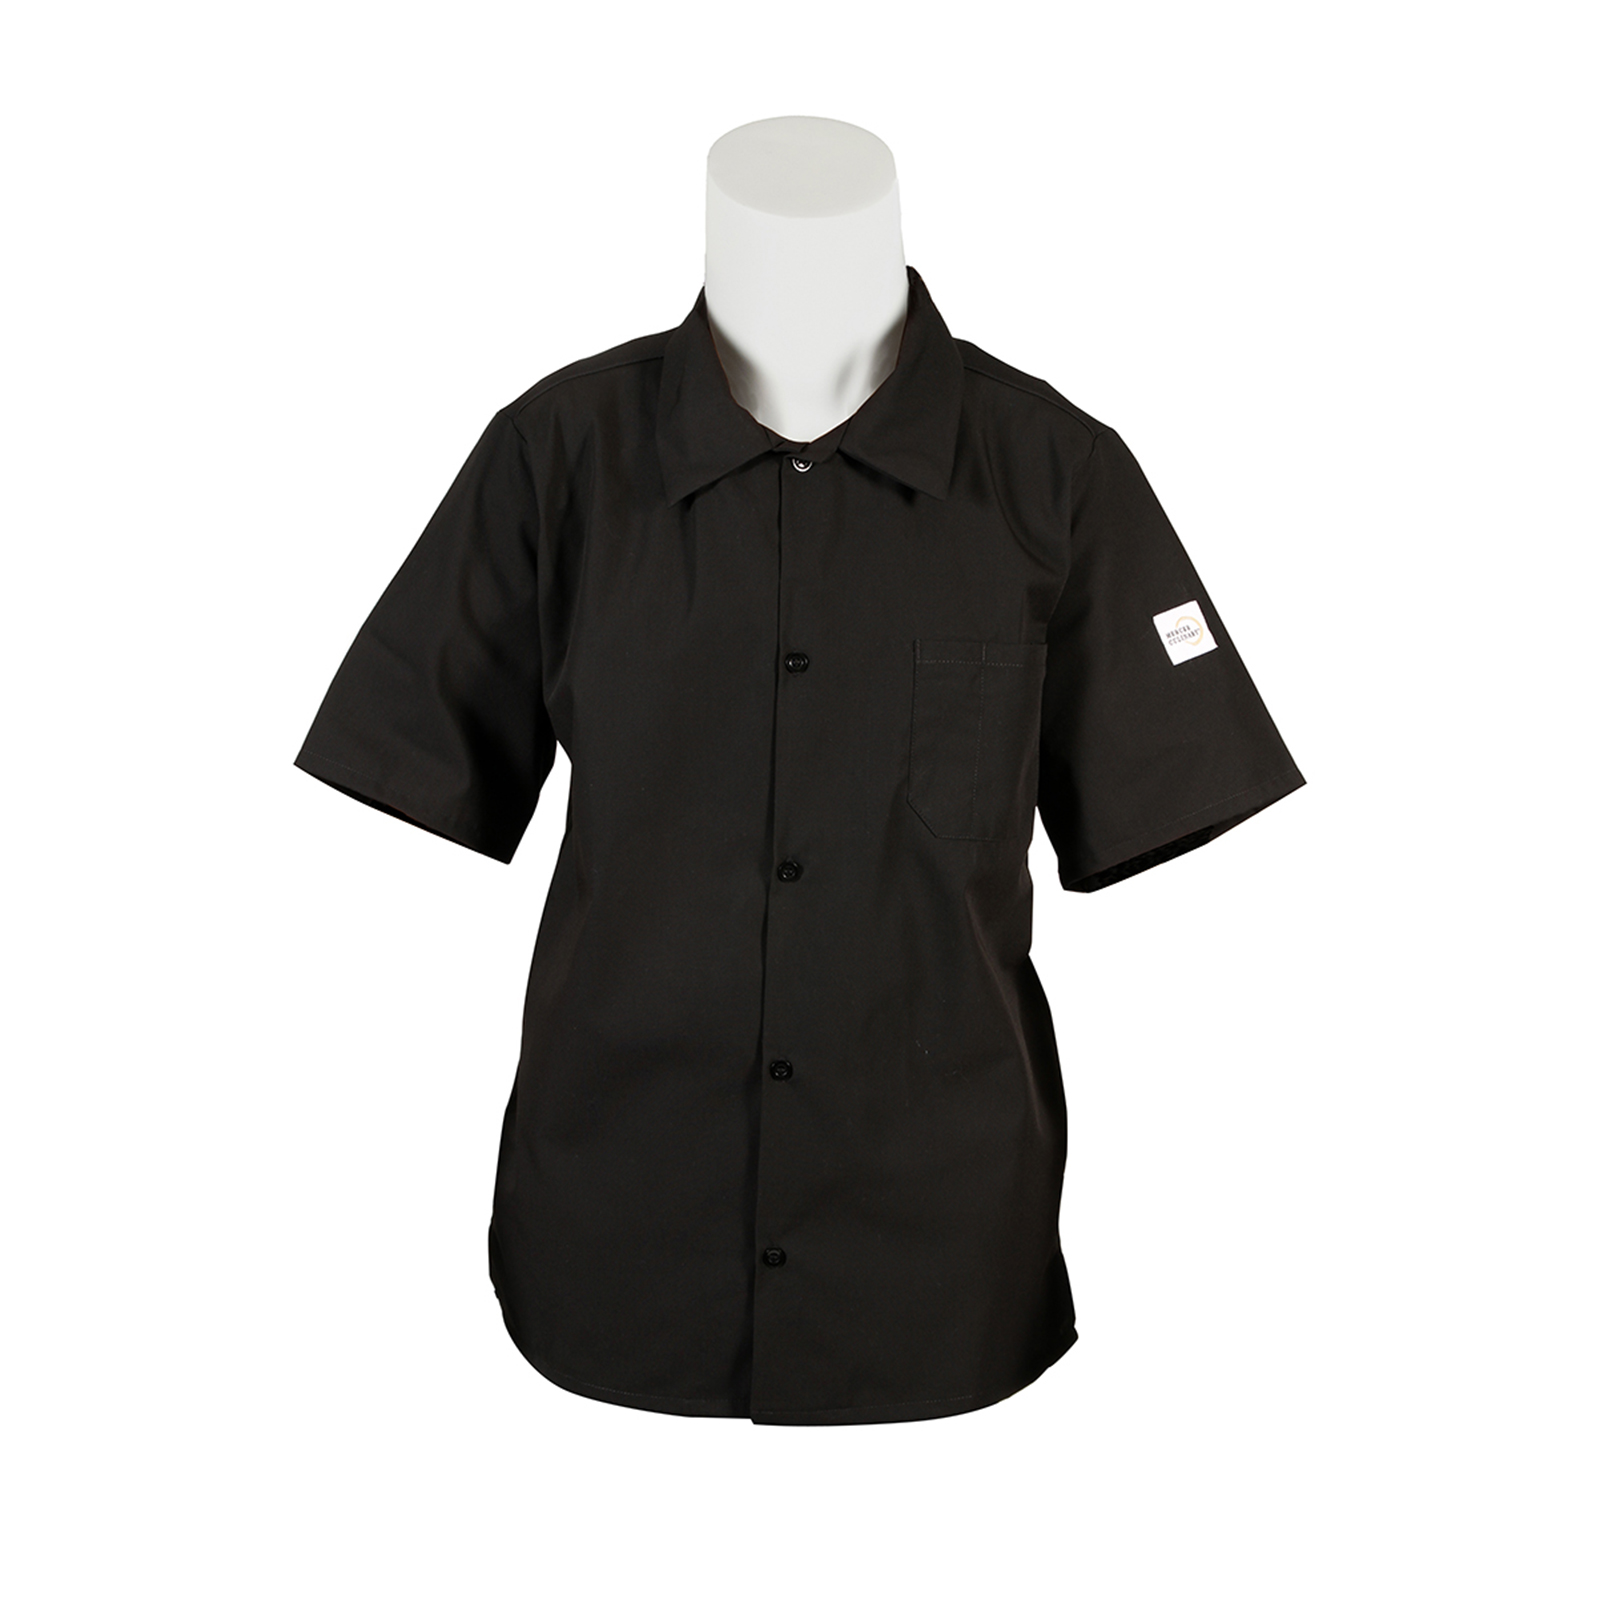 Mercer Culinary M60200BK3X cook's shirt